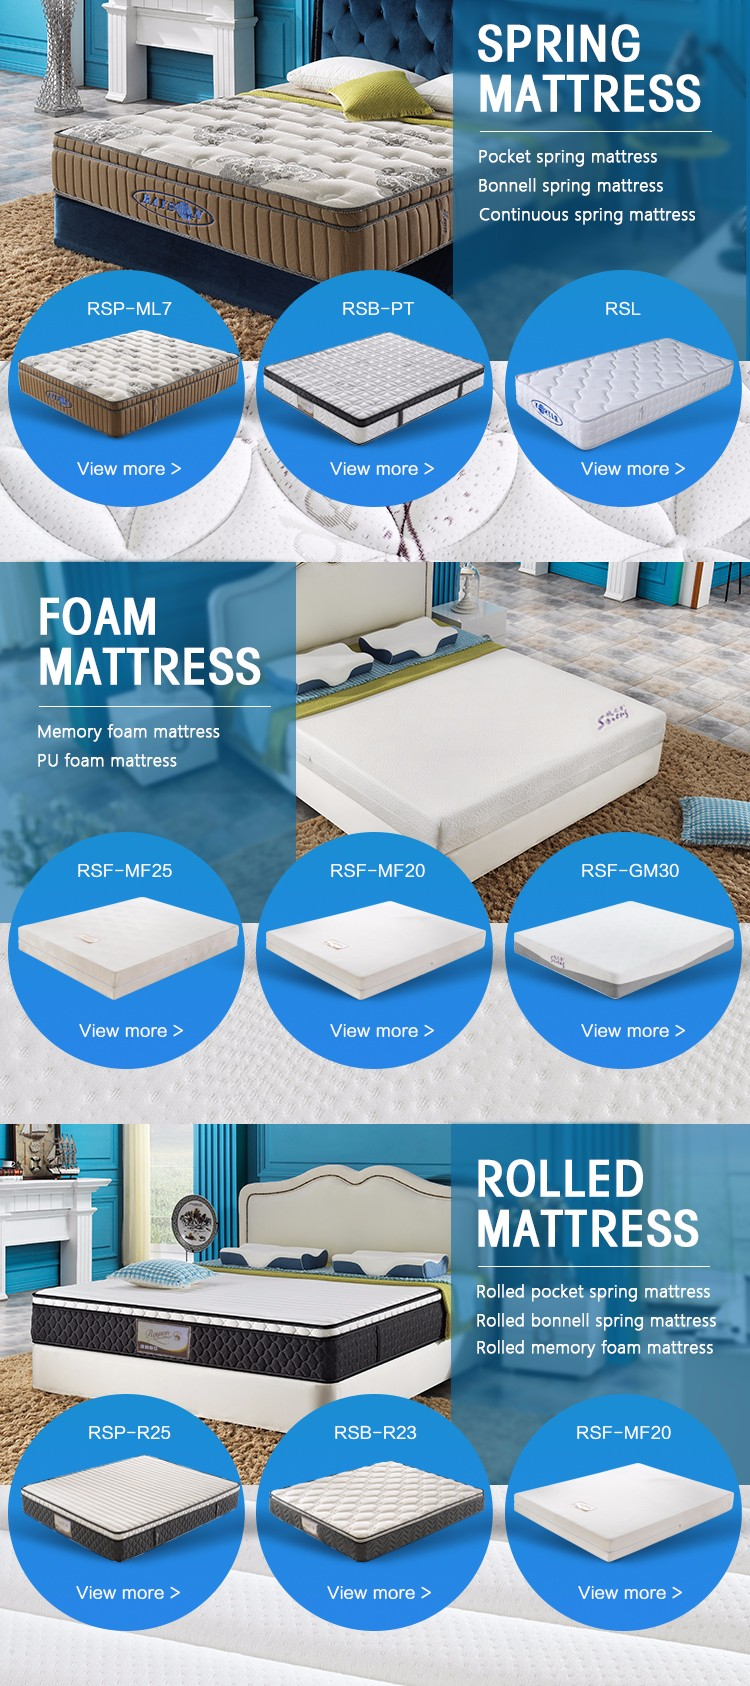 Rayson Mattress High-quality the best pocket sprung mattress Suppliers-8